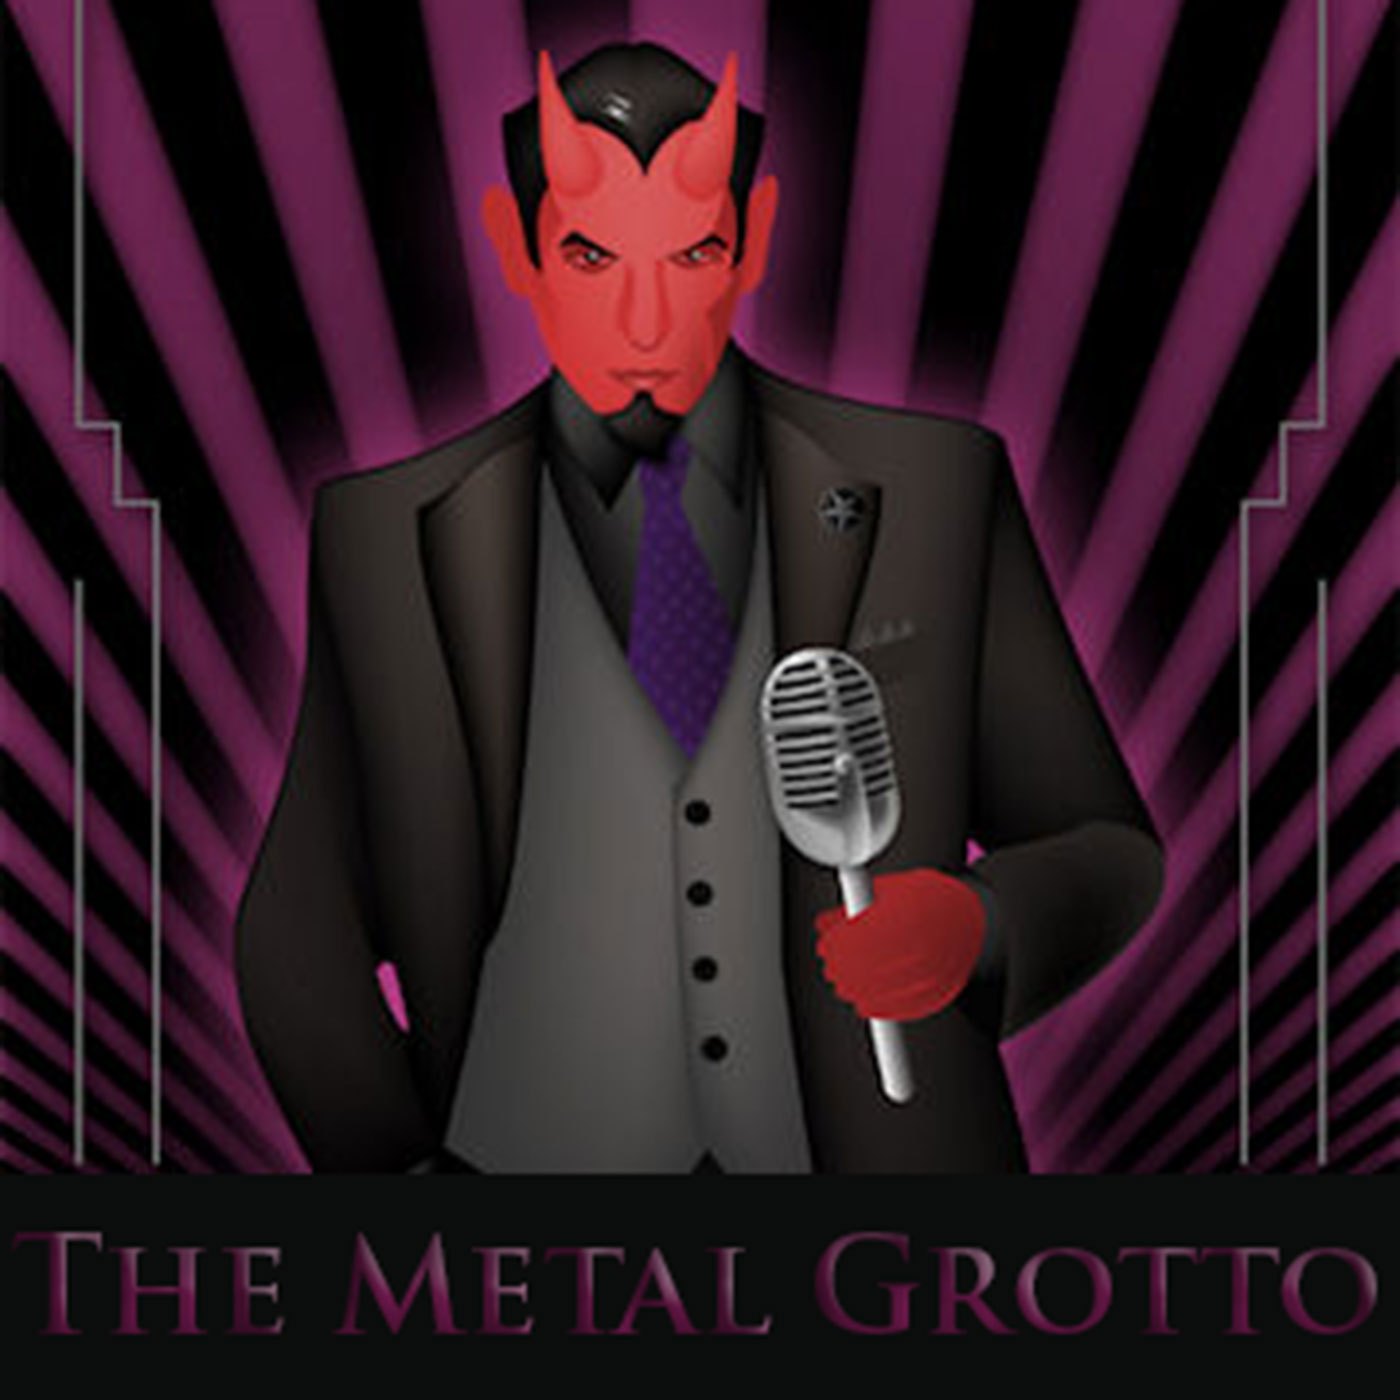 RFS: The Metal Grotto